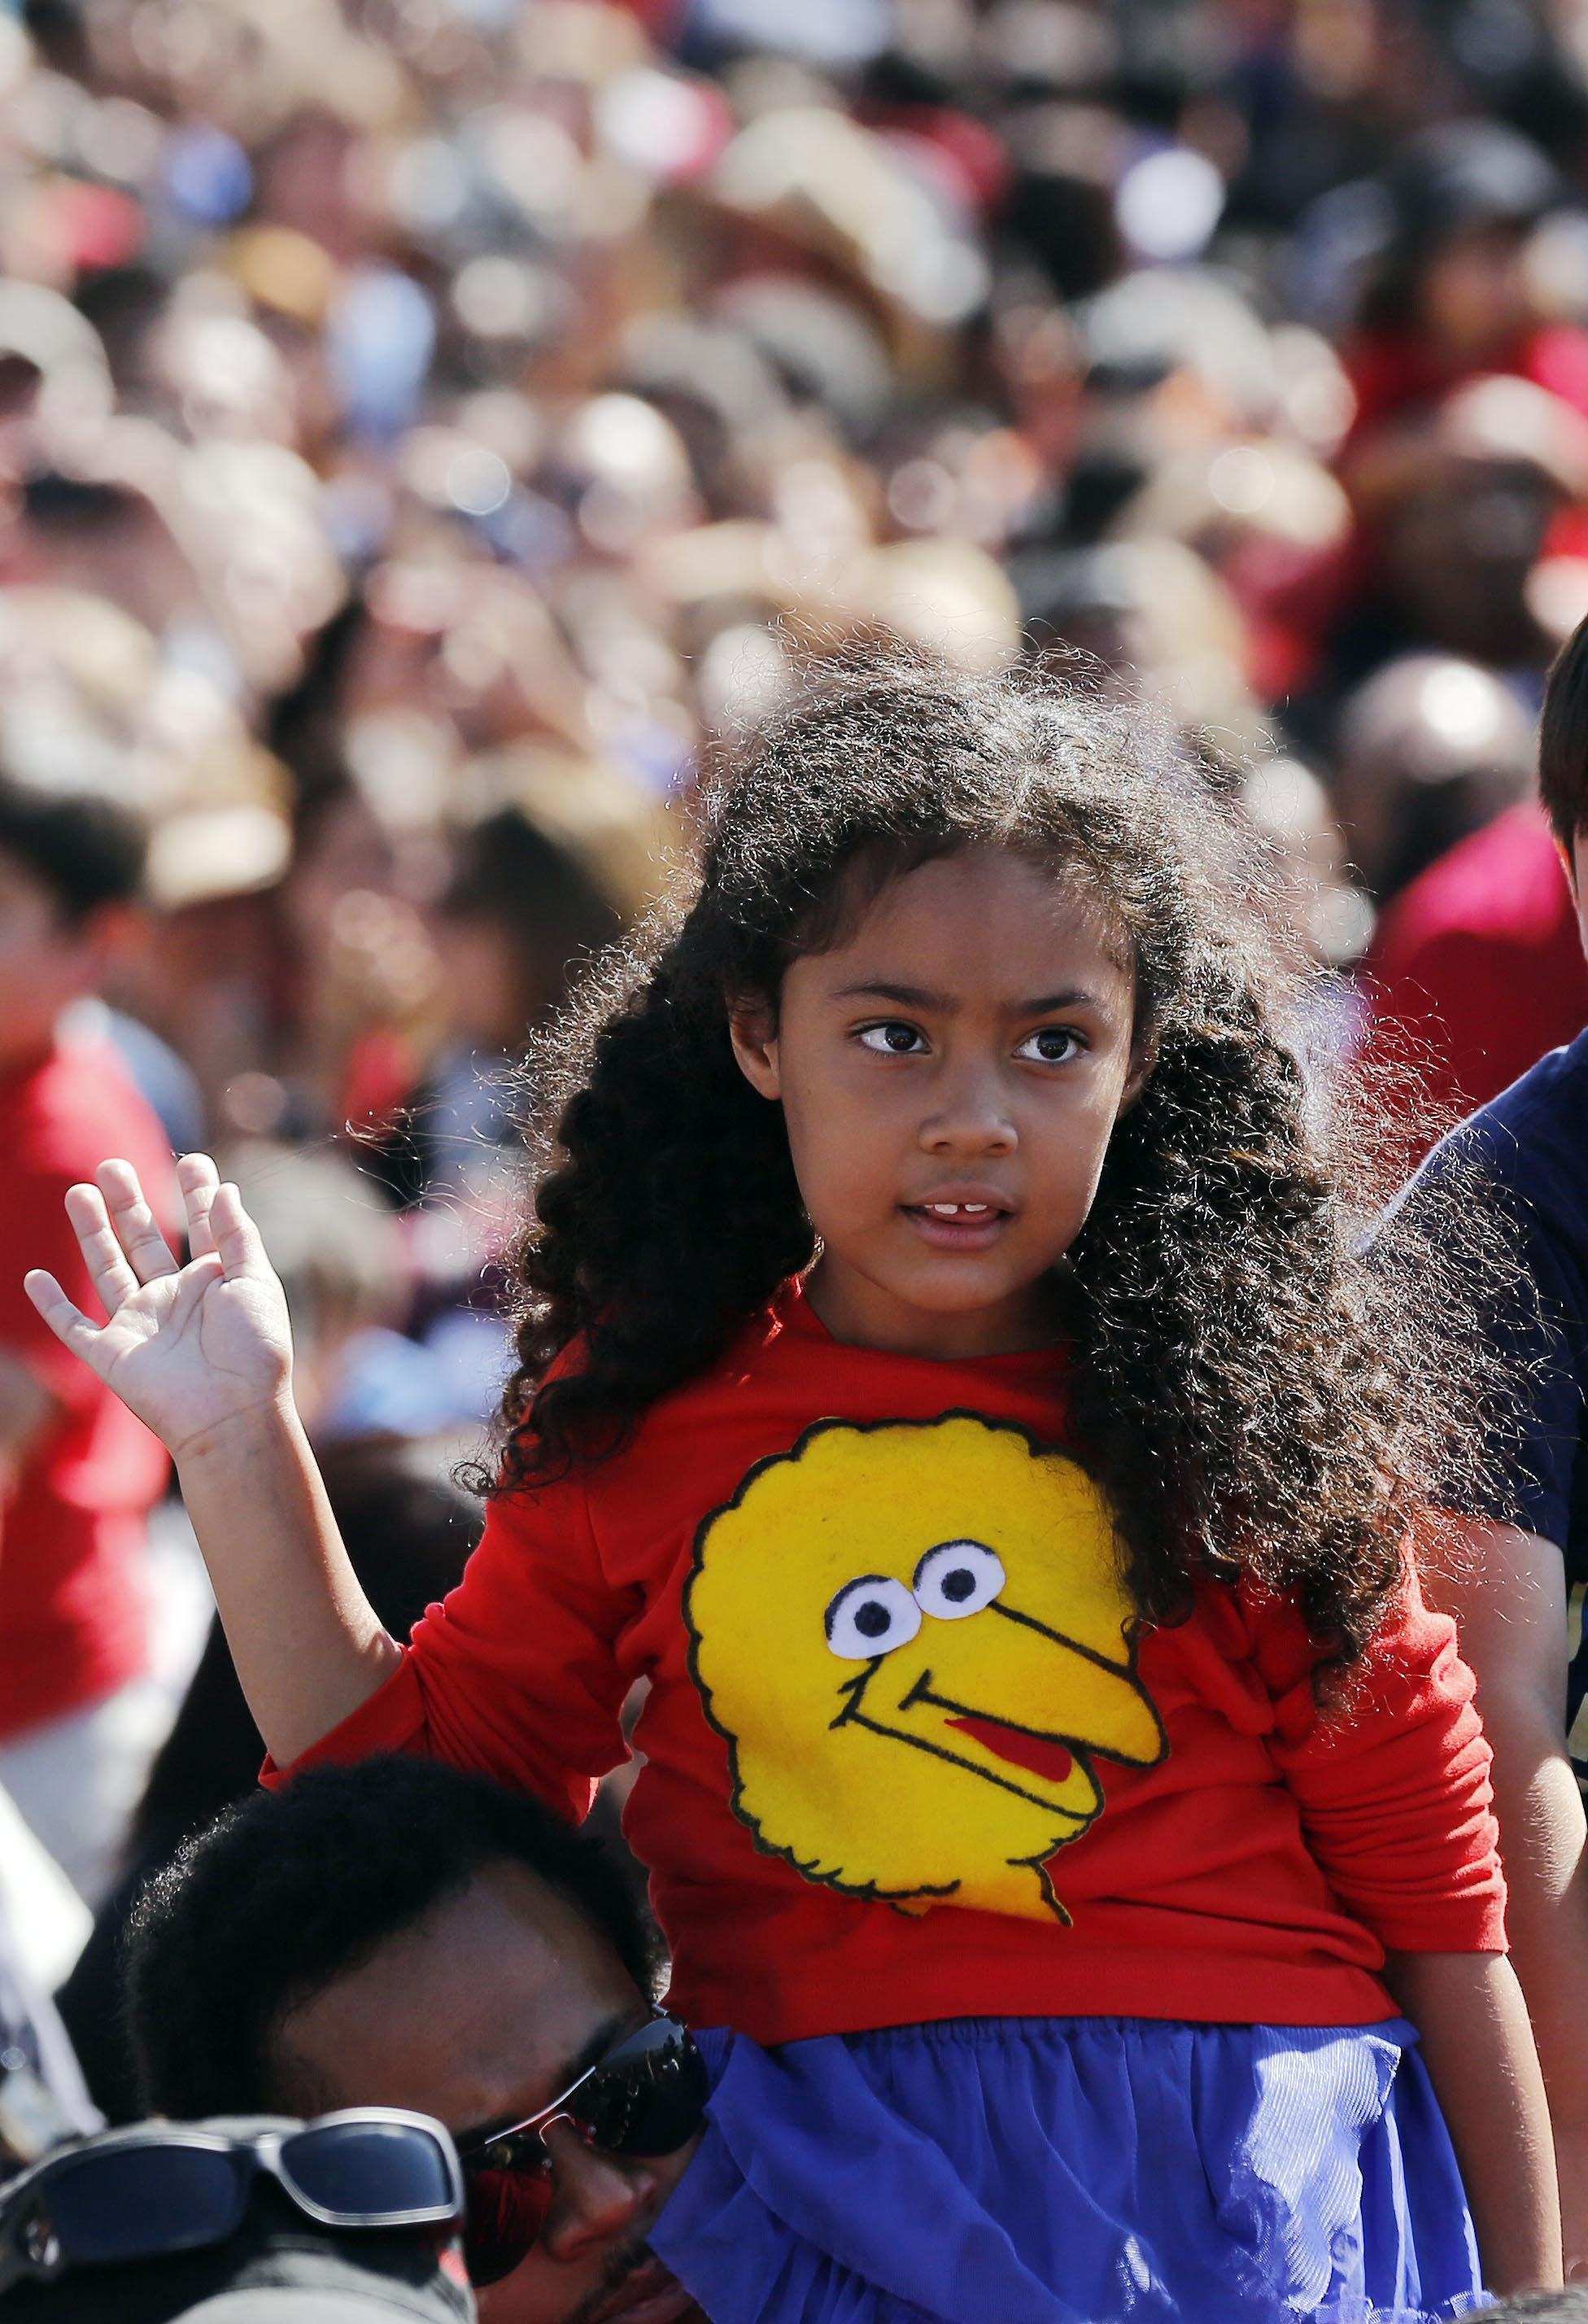 A girl wearing a Big Bird sweater waves at President Barack Obama at the Cesar E. Chavez National Monument in Keene, Calif. (Larry Downing/Reuters)